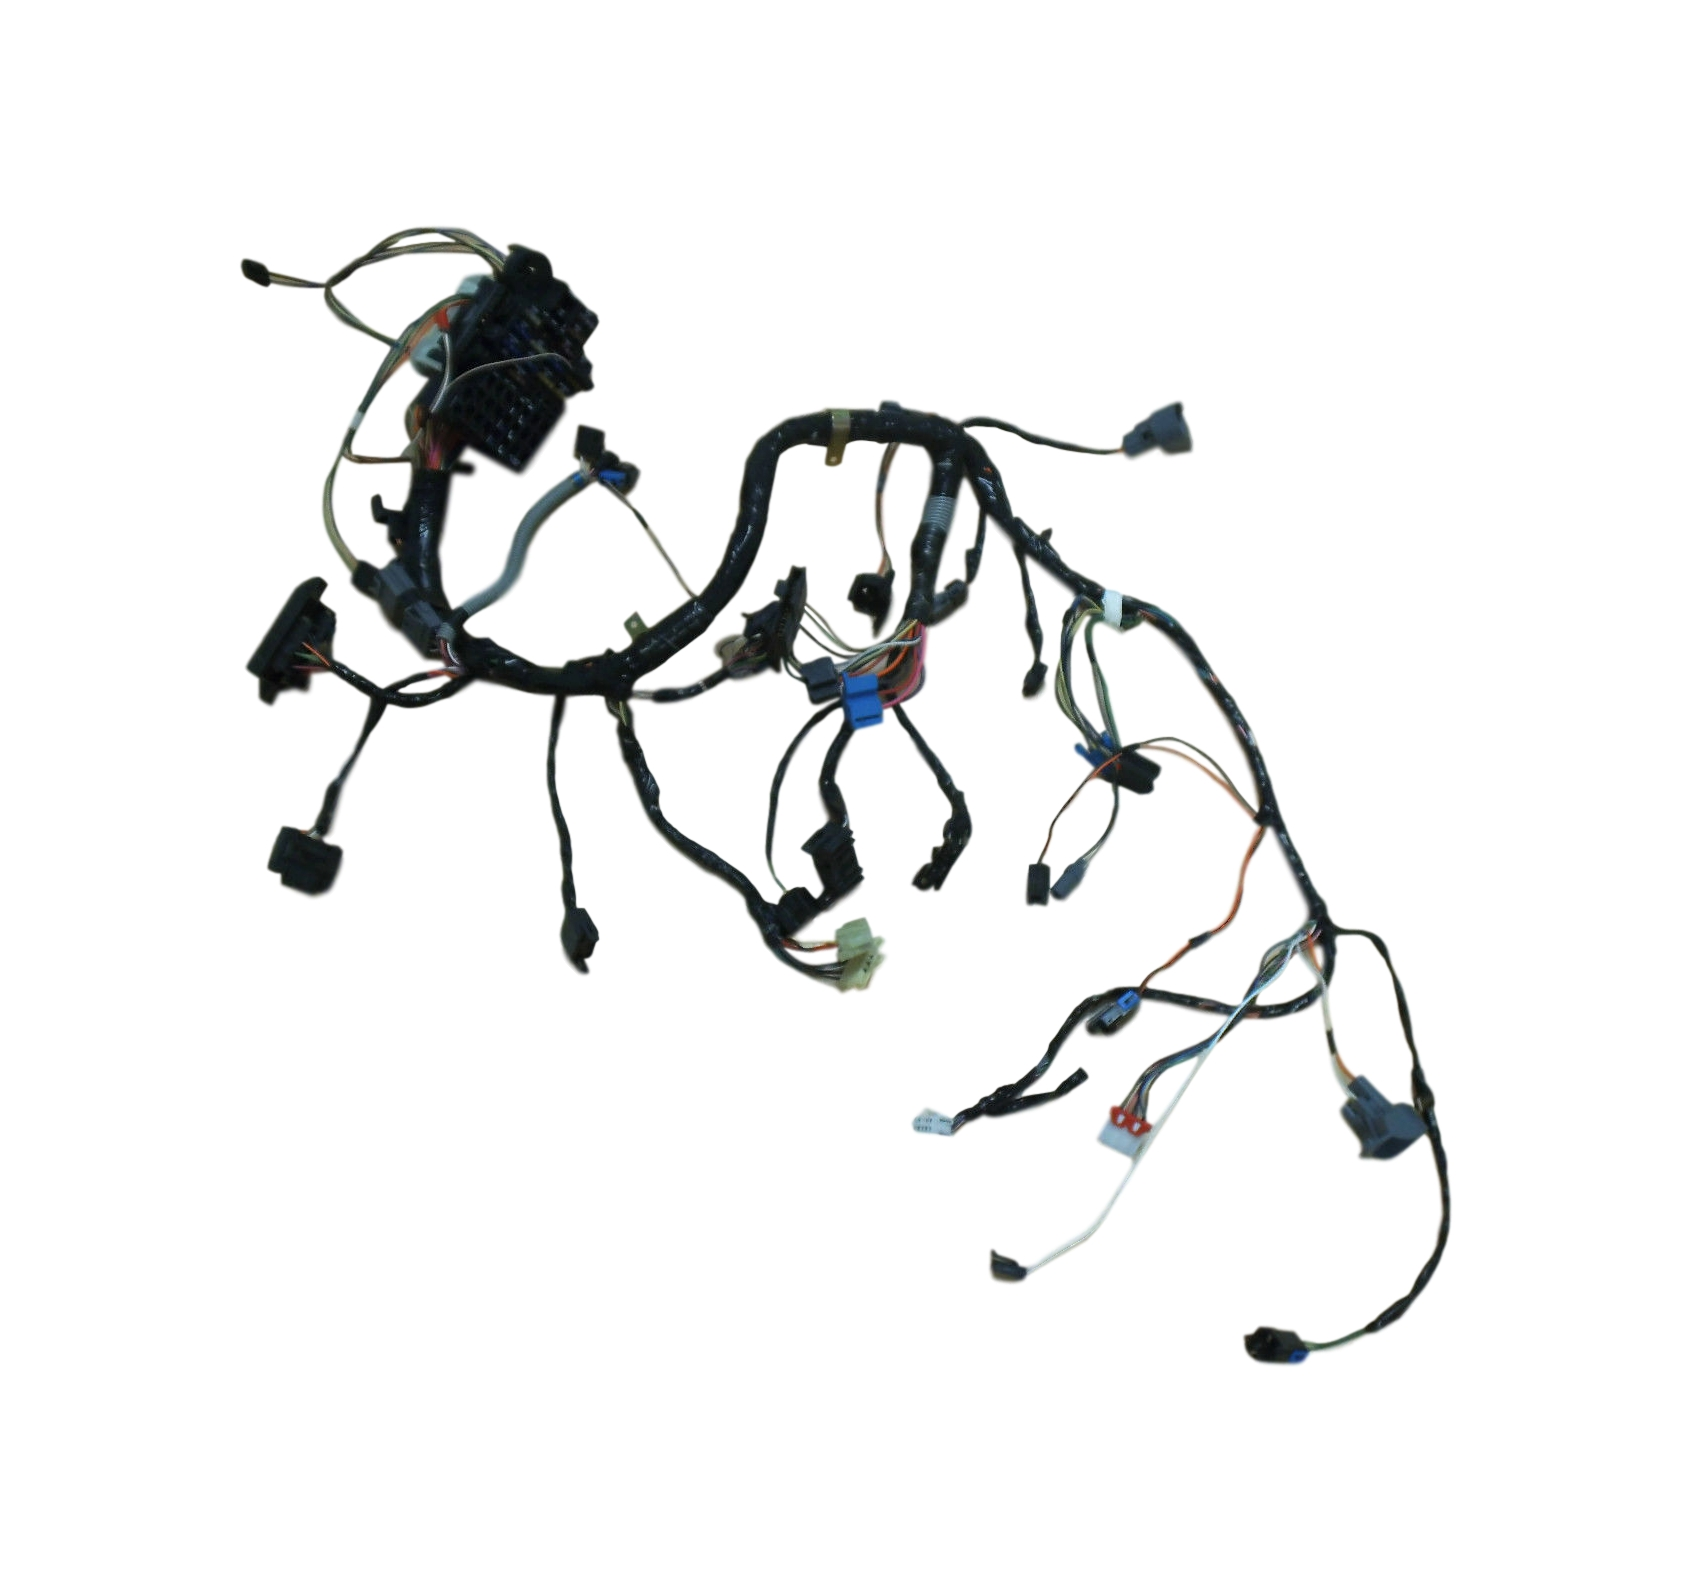 Delco Gm Complete Wiring Harness Assembly 1